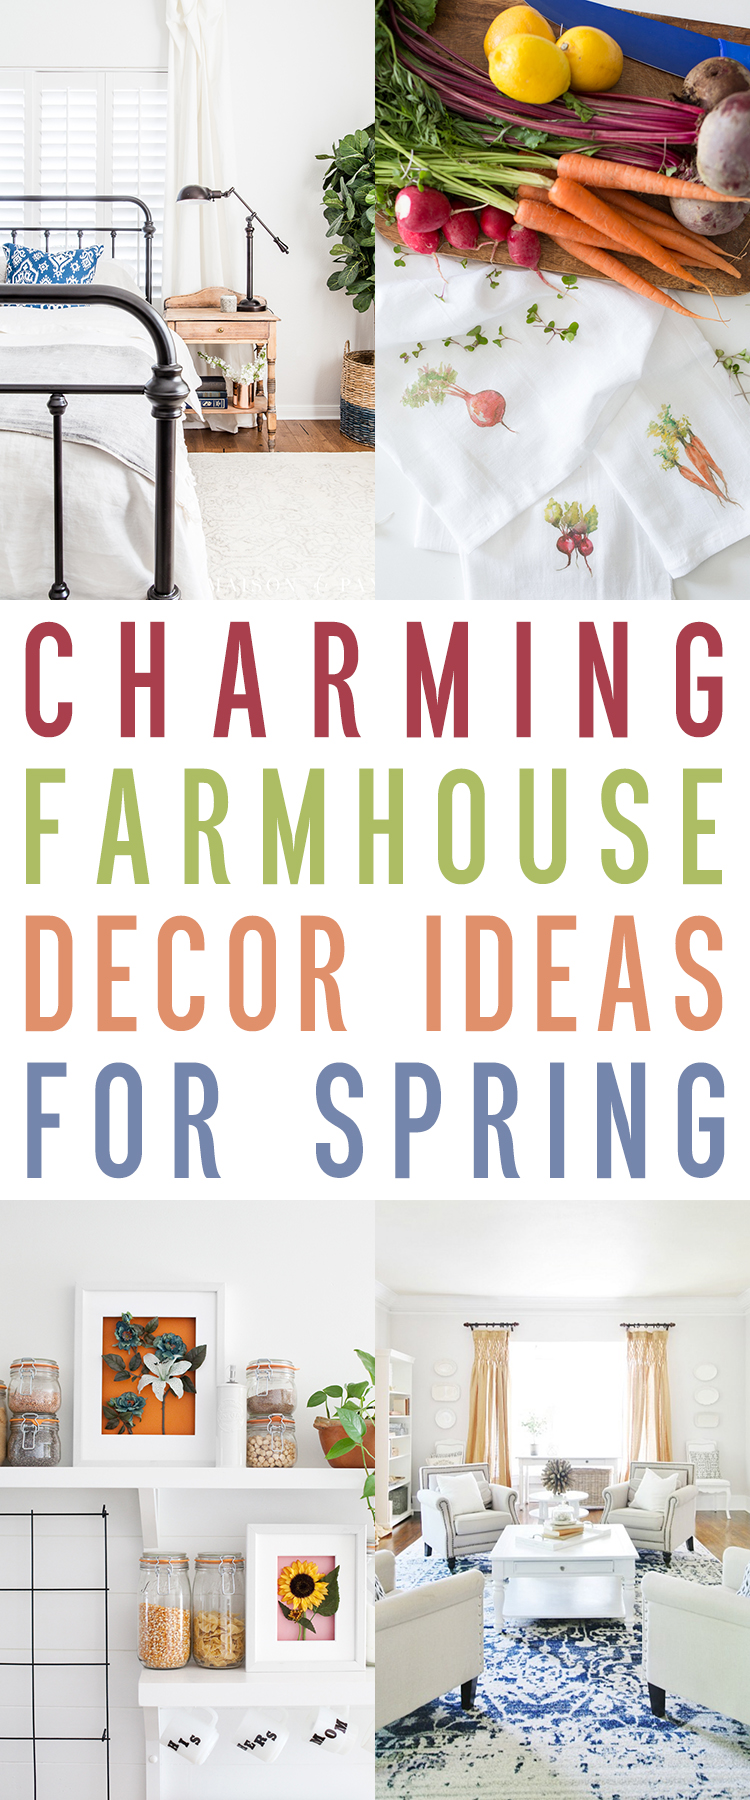 Charming Farmhouse Decor Ideas For Spring